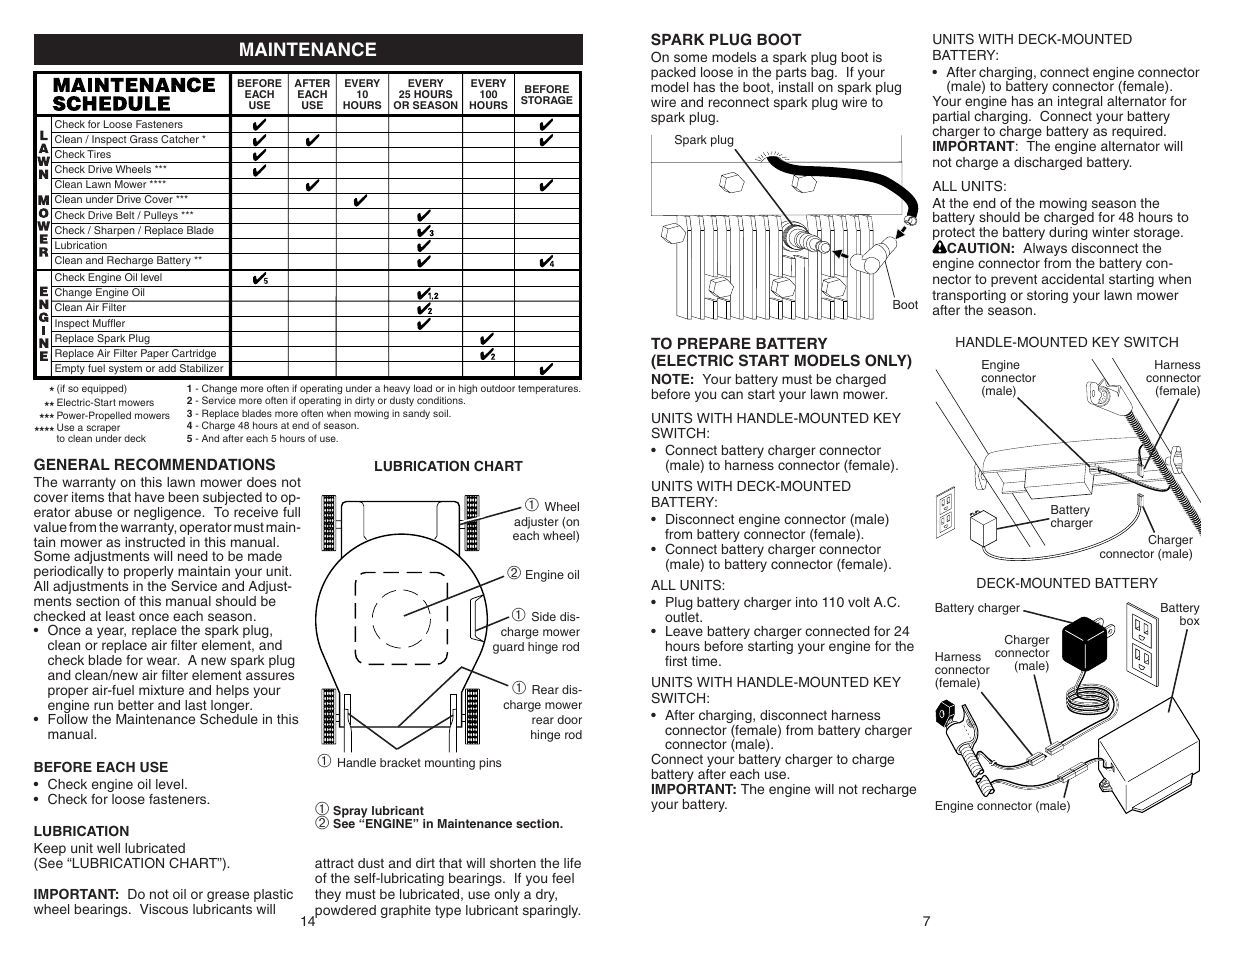 Poulan Lawn Mower Wiring Diagram Maintenance Pro Pr625y22rkp User Manual Page 7 10